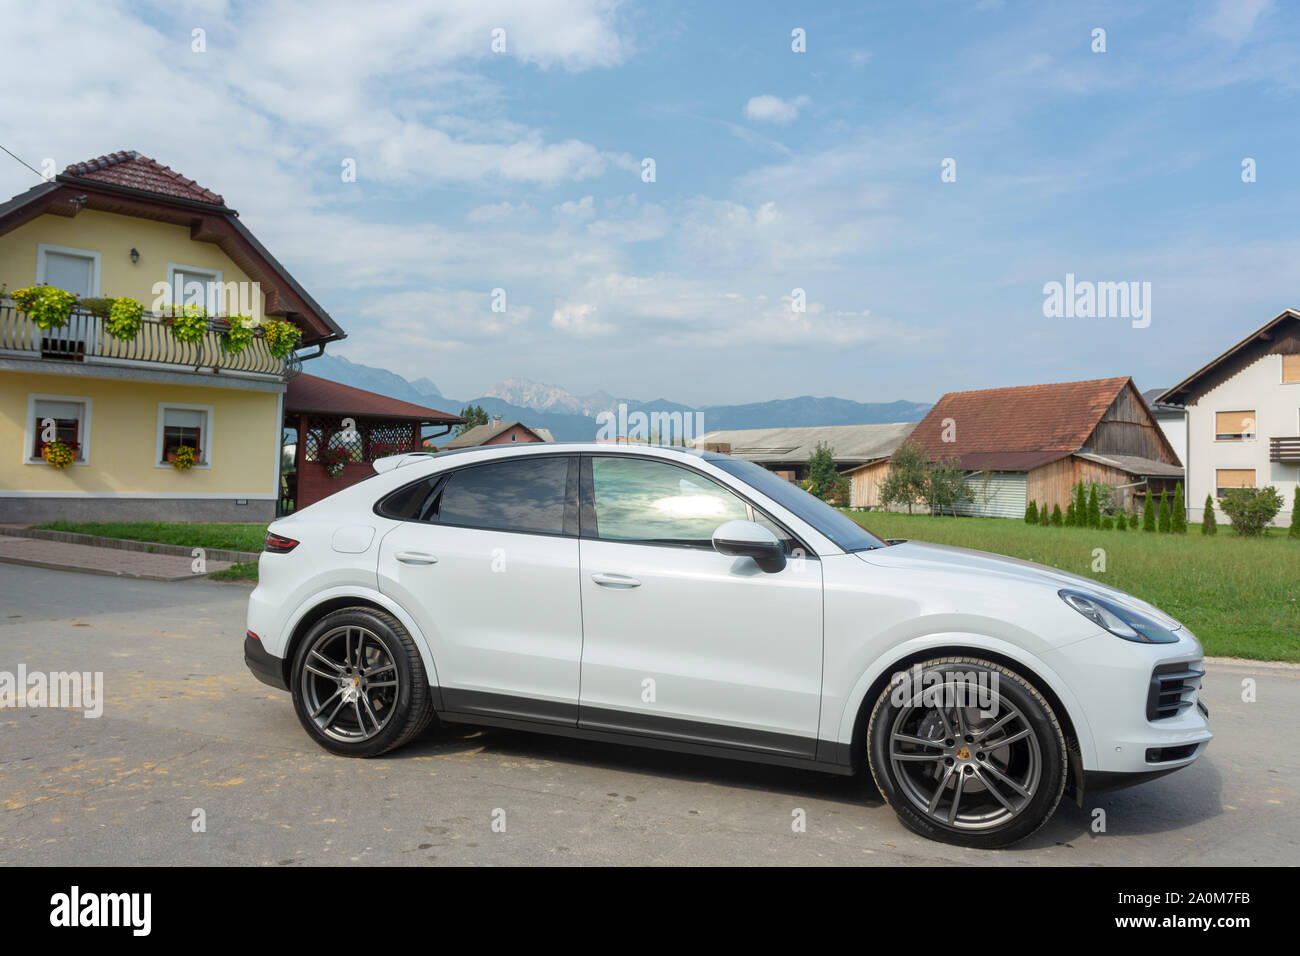 Slovenia Ljubljana 31 August 2019 White Suv Porsche Cayenne Coupe Turbo S From Stuttgart During Test Drive In European Village Stock Photo Alamy